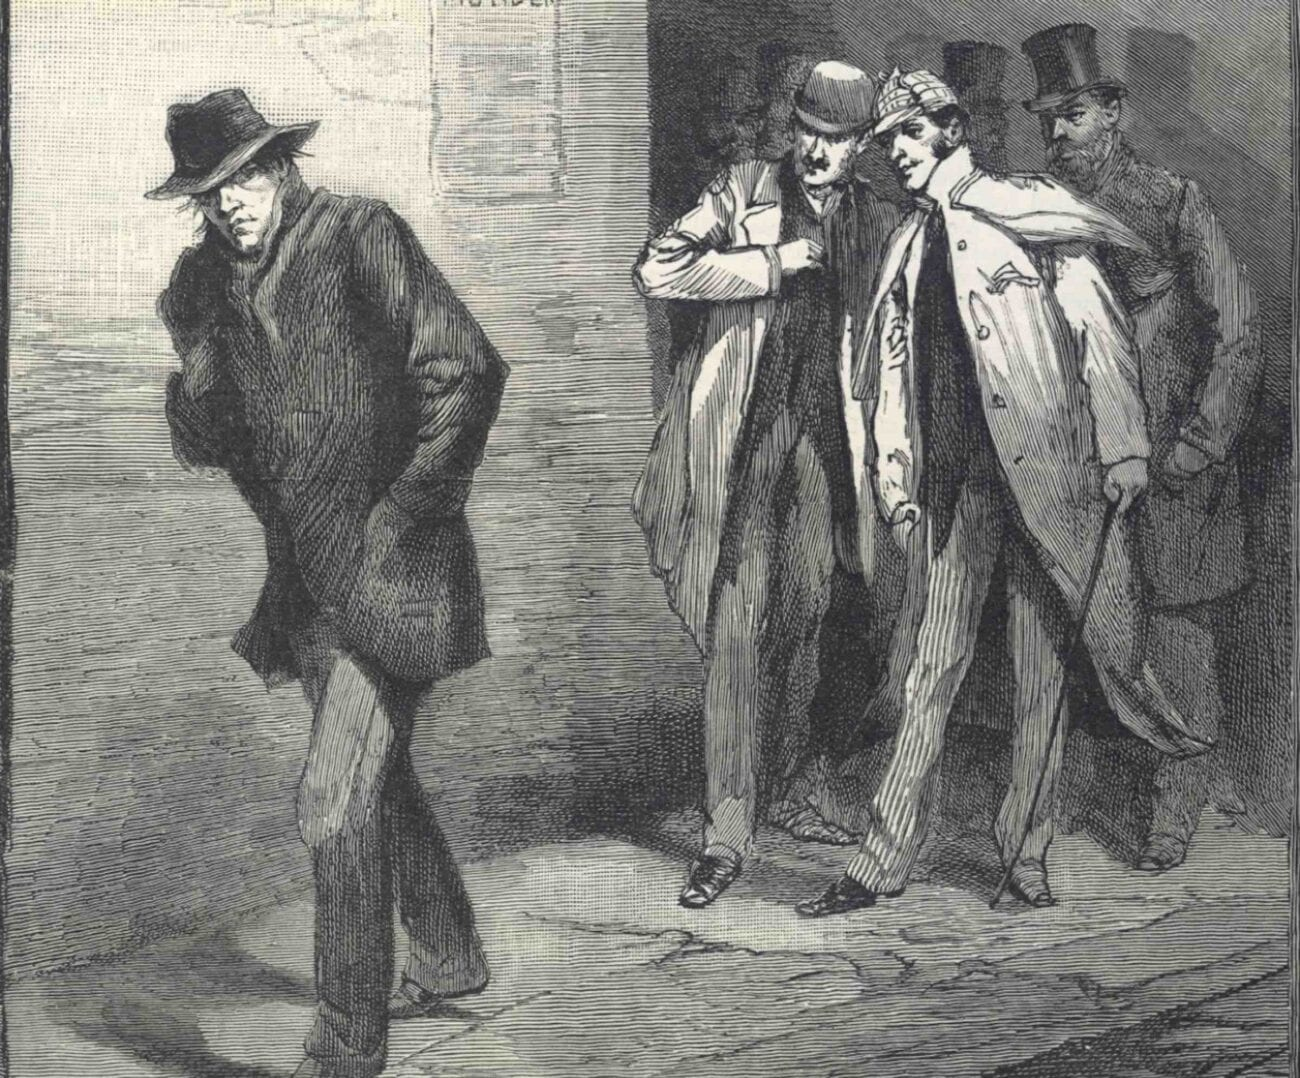 Jack the Ripper is the serial killer to which all other serial killers are held up to. Who's Jack the Ripper? Let's find out!